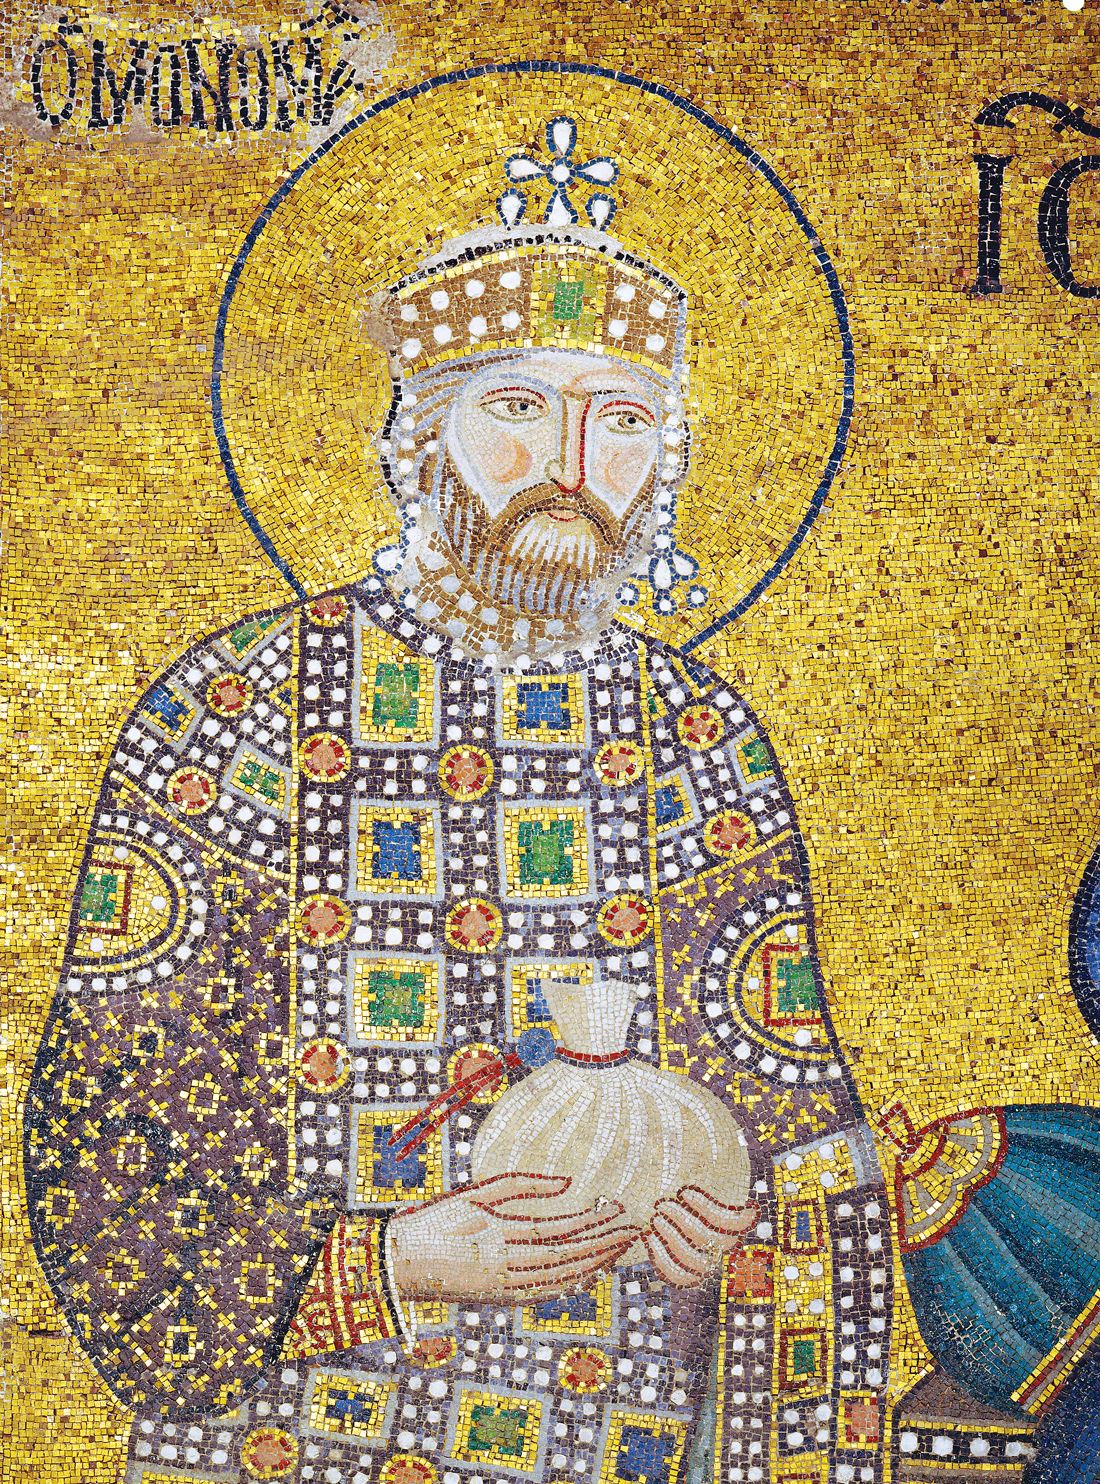 Byzantine emperor Constantine IX Monomachos holding a money-bag for the Church's endowment, eleventh century. Hagia Sophia, Istanbul, Turkey.